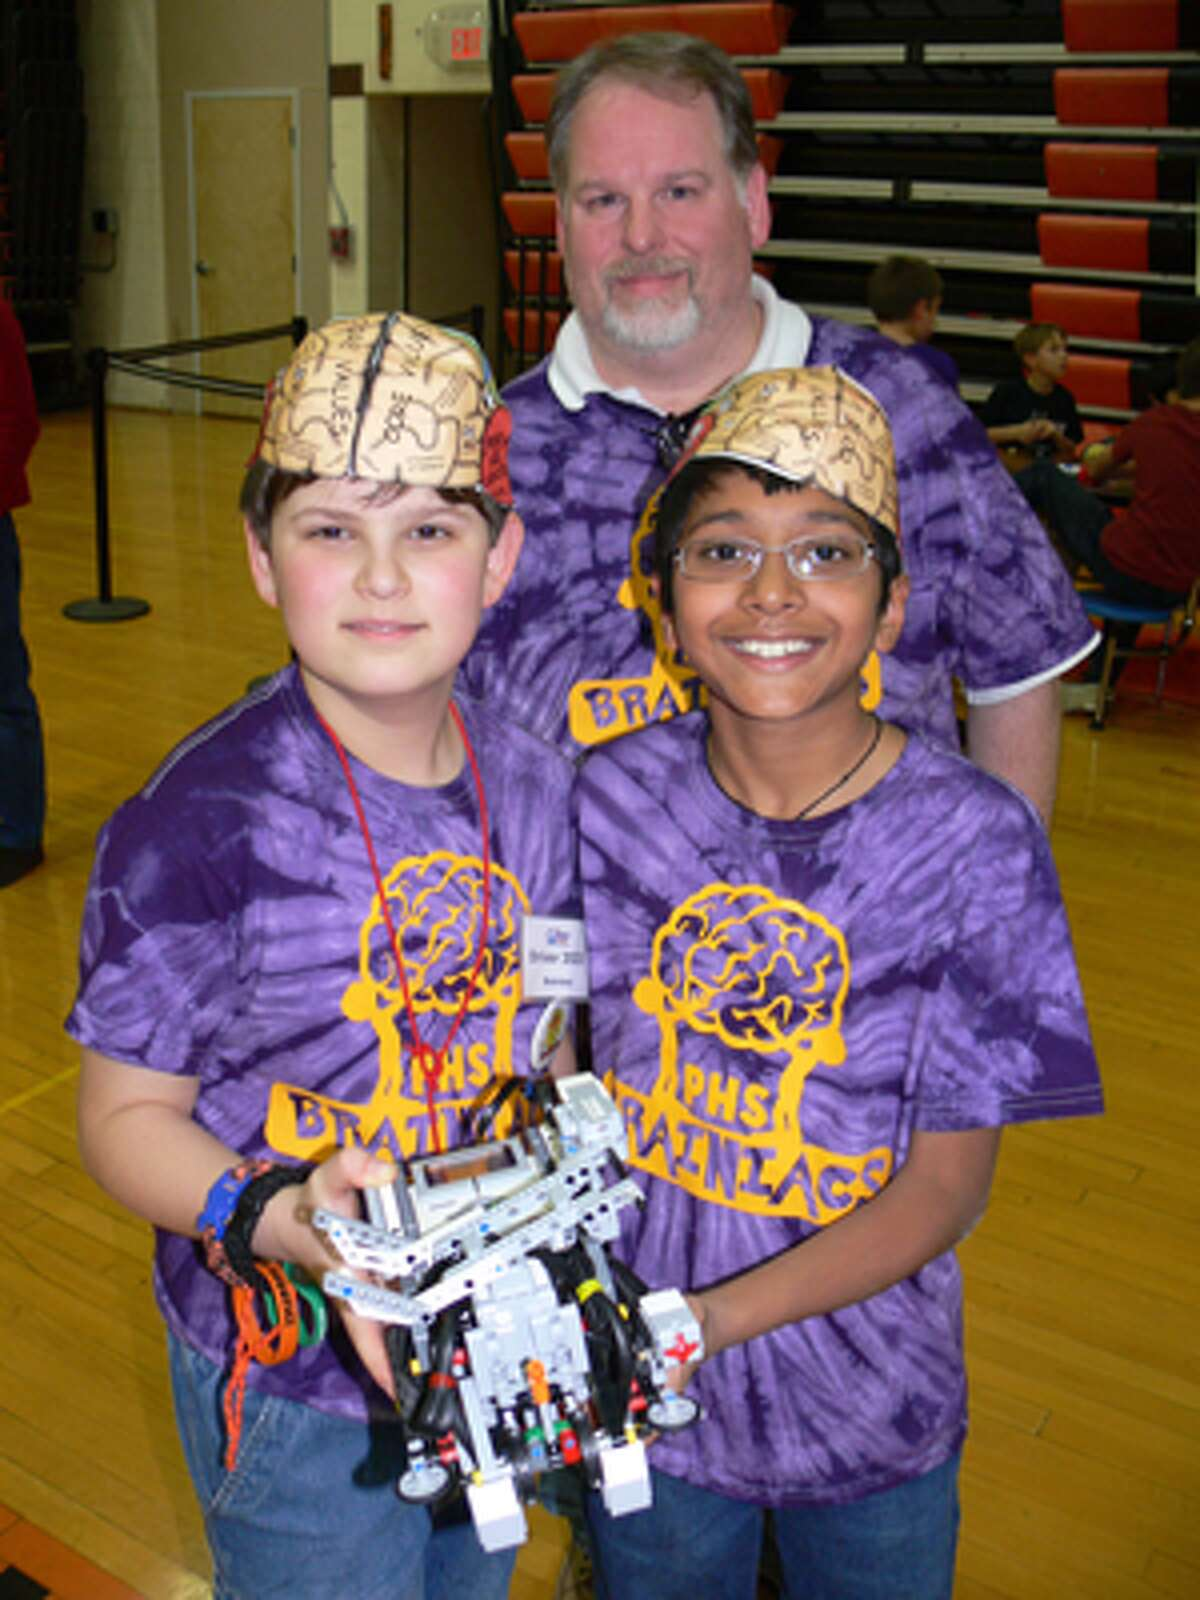 At last week's regional tournament, Evan Kryger, left, and Archit Bhargava, members of the Perry Hill Brainiacs, with coach Bob Kryger, who is Evan's father.